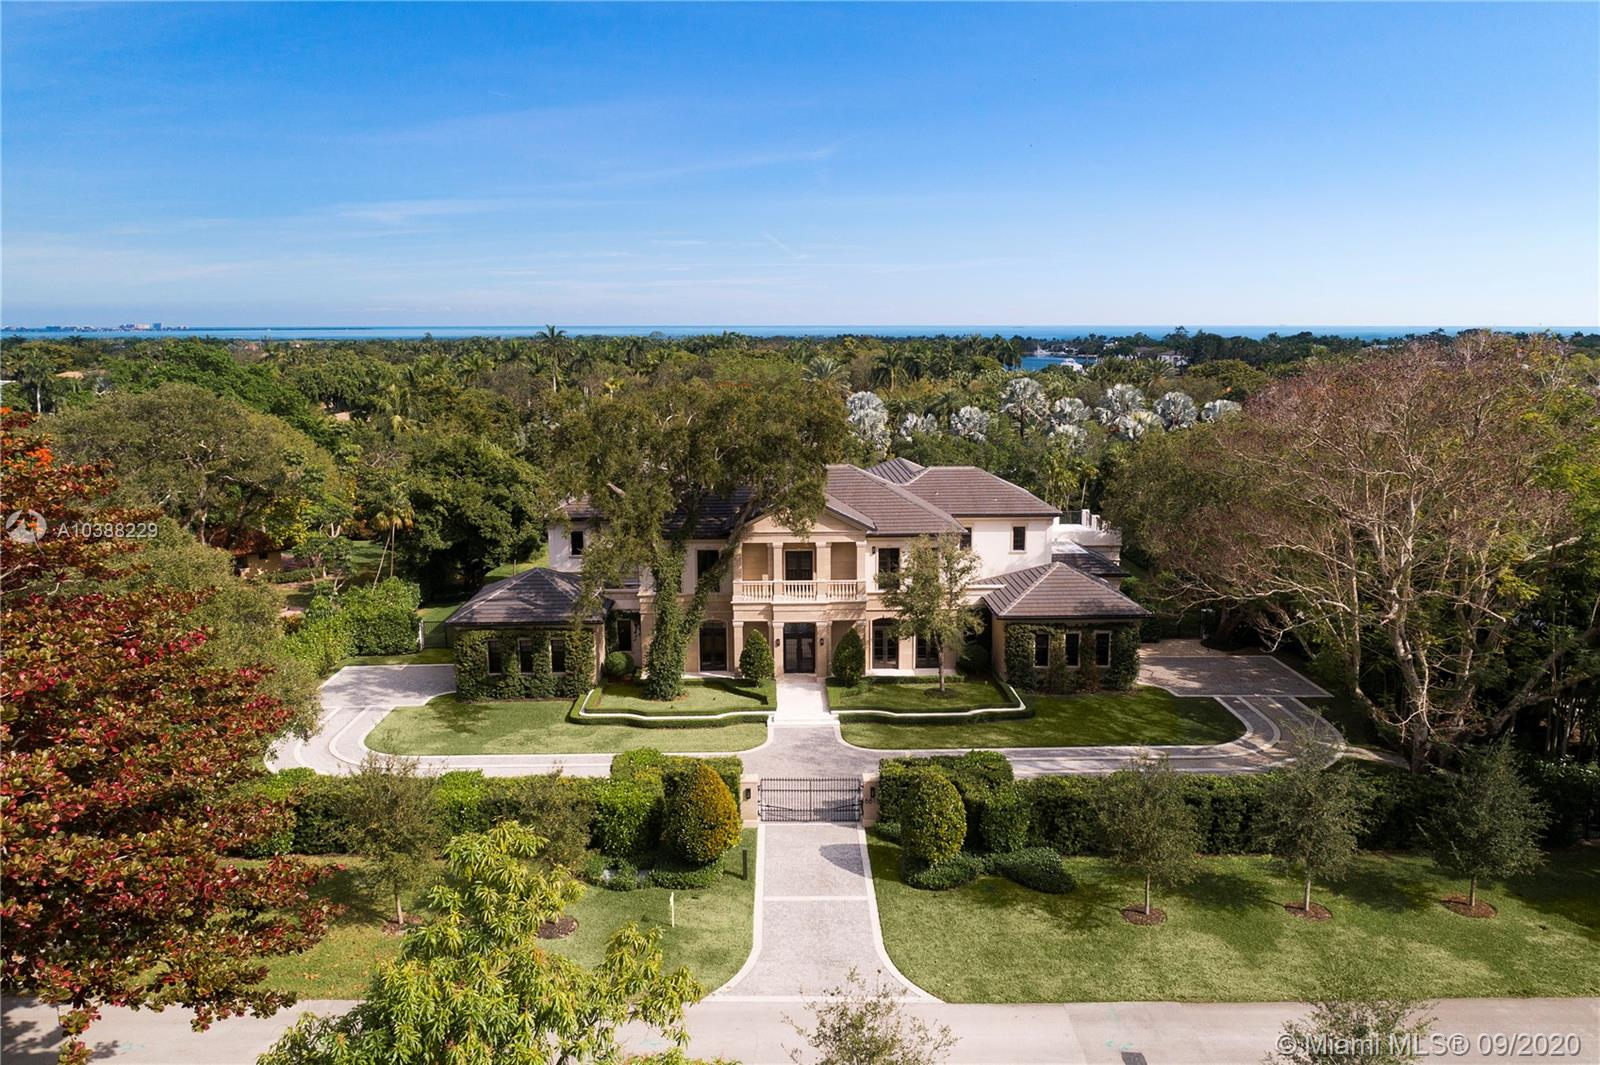 Set Perfectly On A 50, 000Sf Waterfront Lot In Prestigious And Gated Gables Estates, This 2017 Classic Palladian Home Offers The Perfect Backdrop For Either Lavish Entertaining Or Cozy Family Affairs.In The 12, 839 Sf Home, One Finds A Theater, Large Family Room, Gourmet Cook+Ógé¼Gäós, Eat-In Kitchen, And Master Suite With His And Her Lavish Baths And Dressing Room Closets; 4 Car Garage, Covered Terraces With A Cabana, Summer Kitchen And Sparkling, Oversized Pool, Serve As The Centerpiece Of The Rolling Back Lawn.